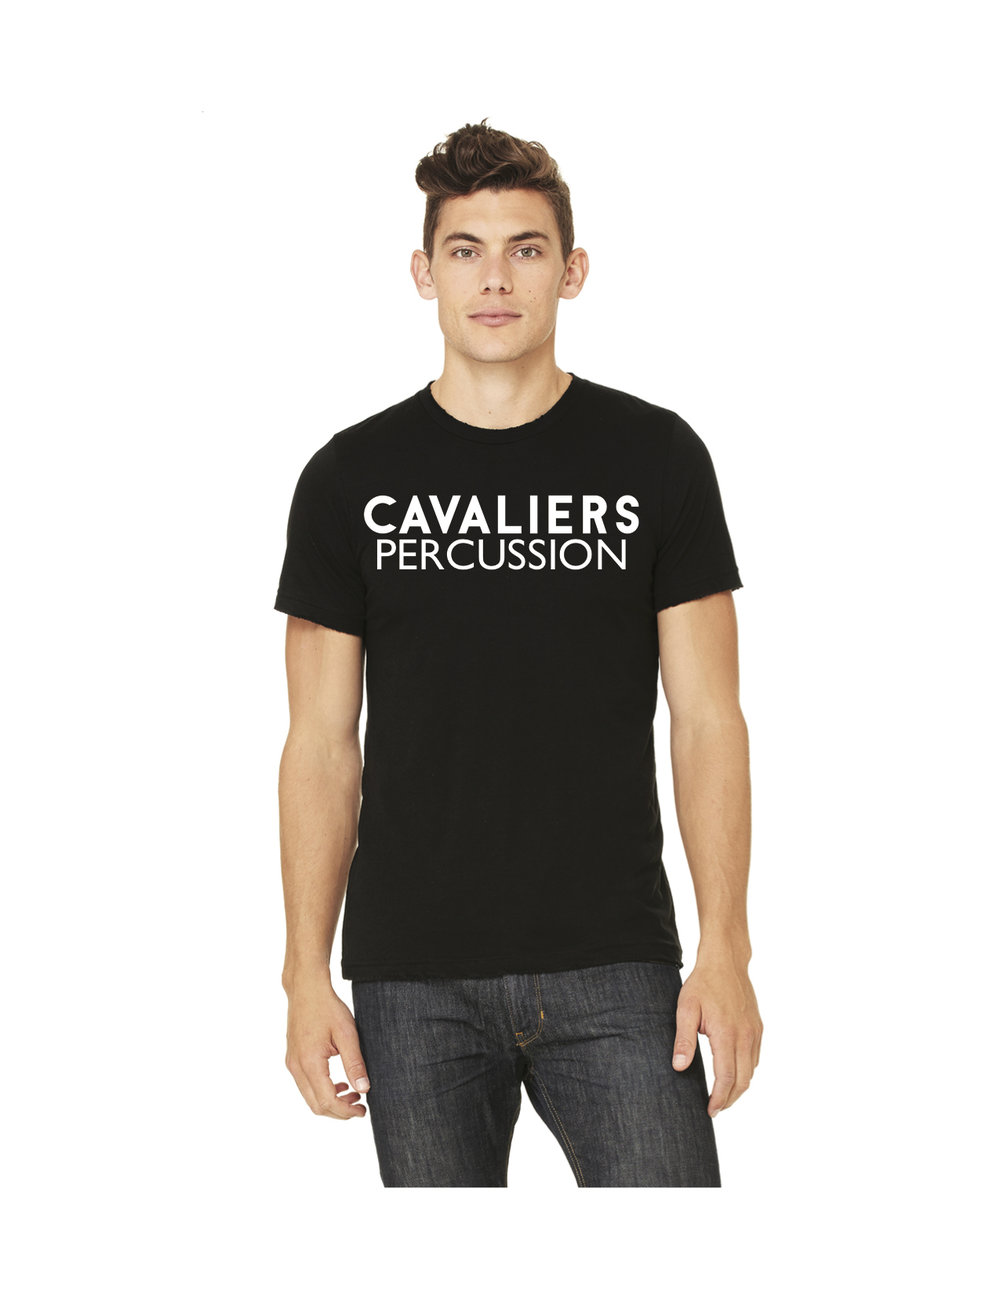 Cavaliers Percussion T-Shirt 2017.jpg